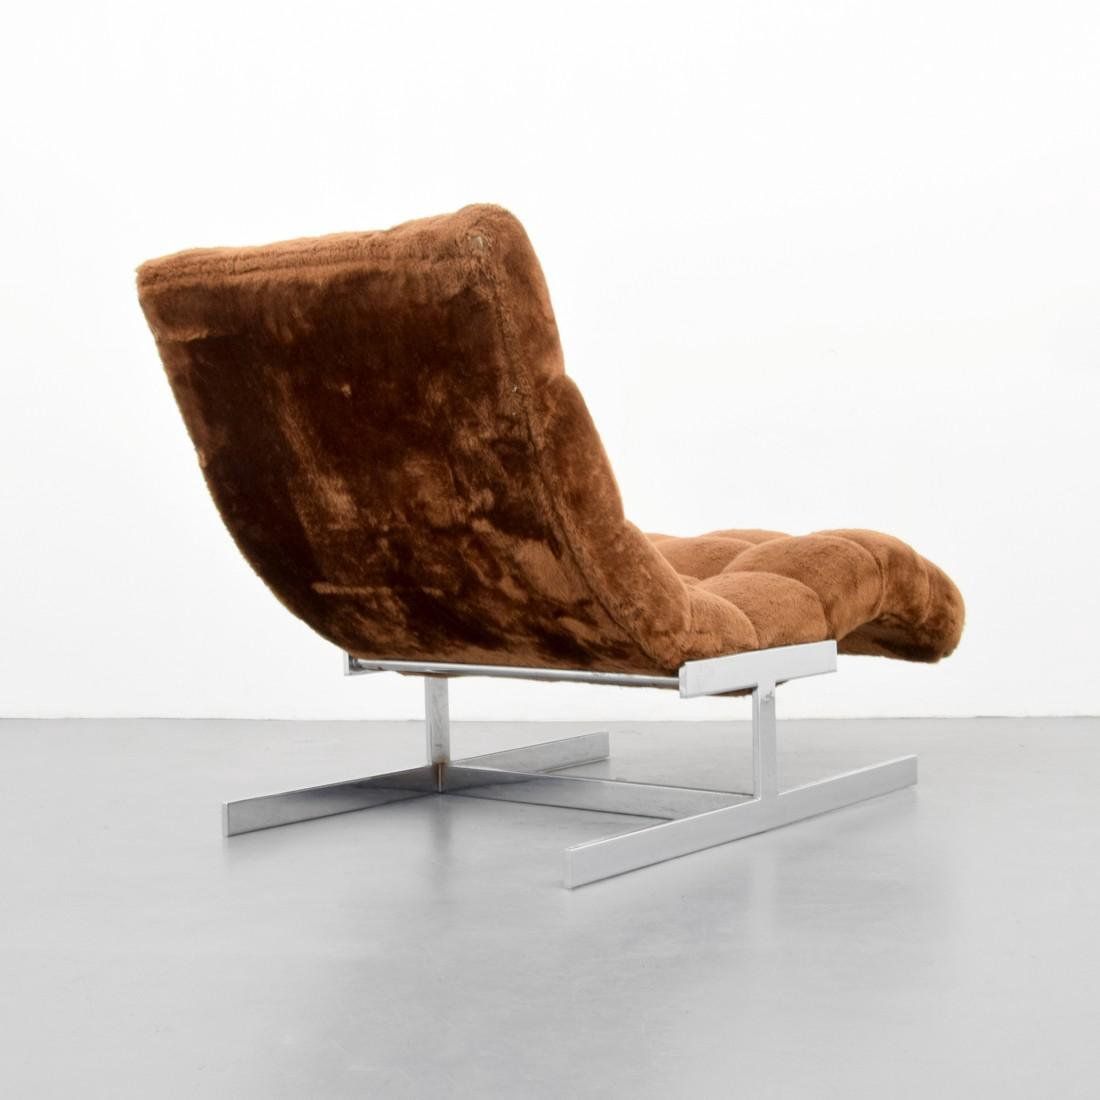 Chaise Lounge Chair, Manner of Milo Baughman - 4